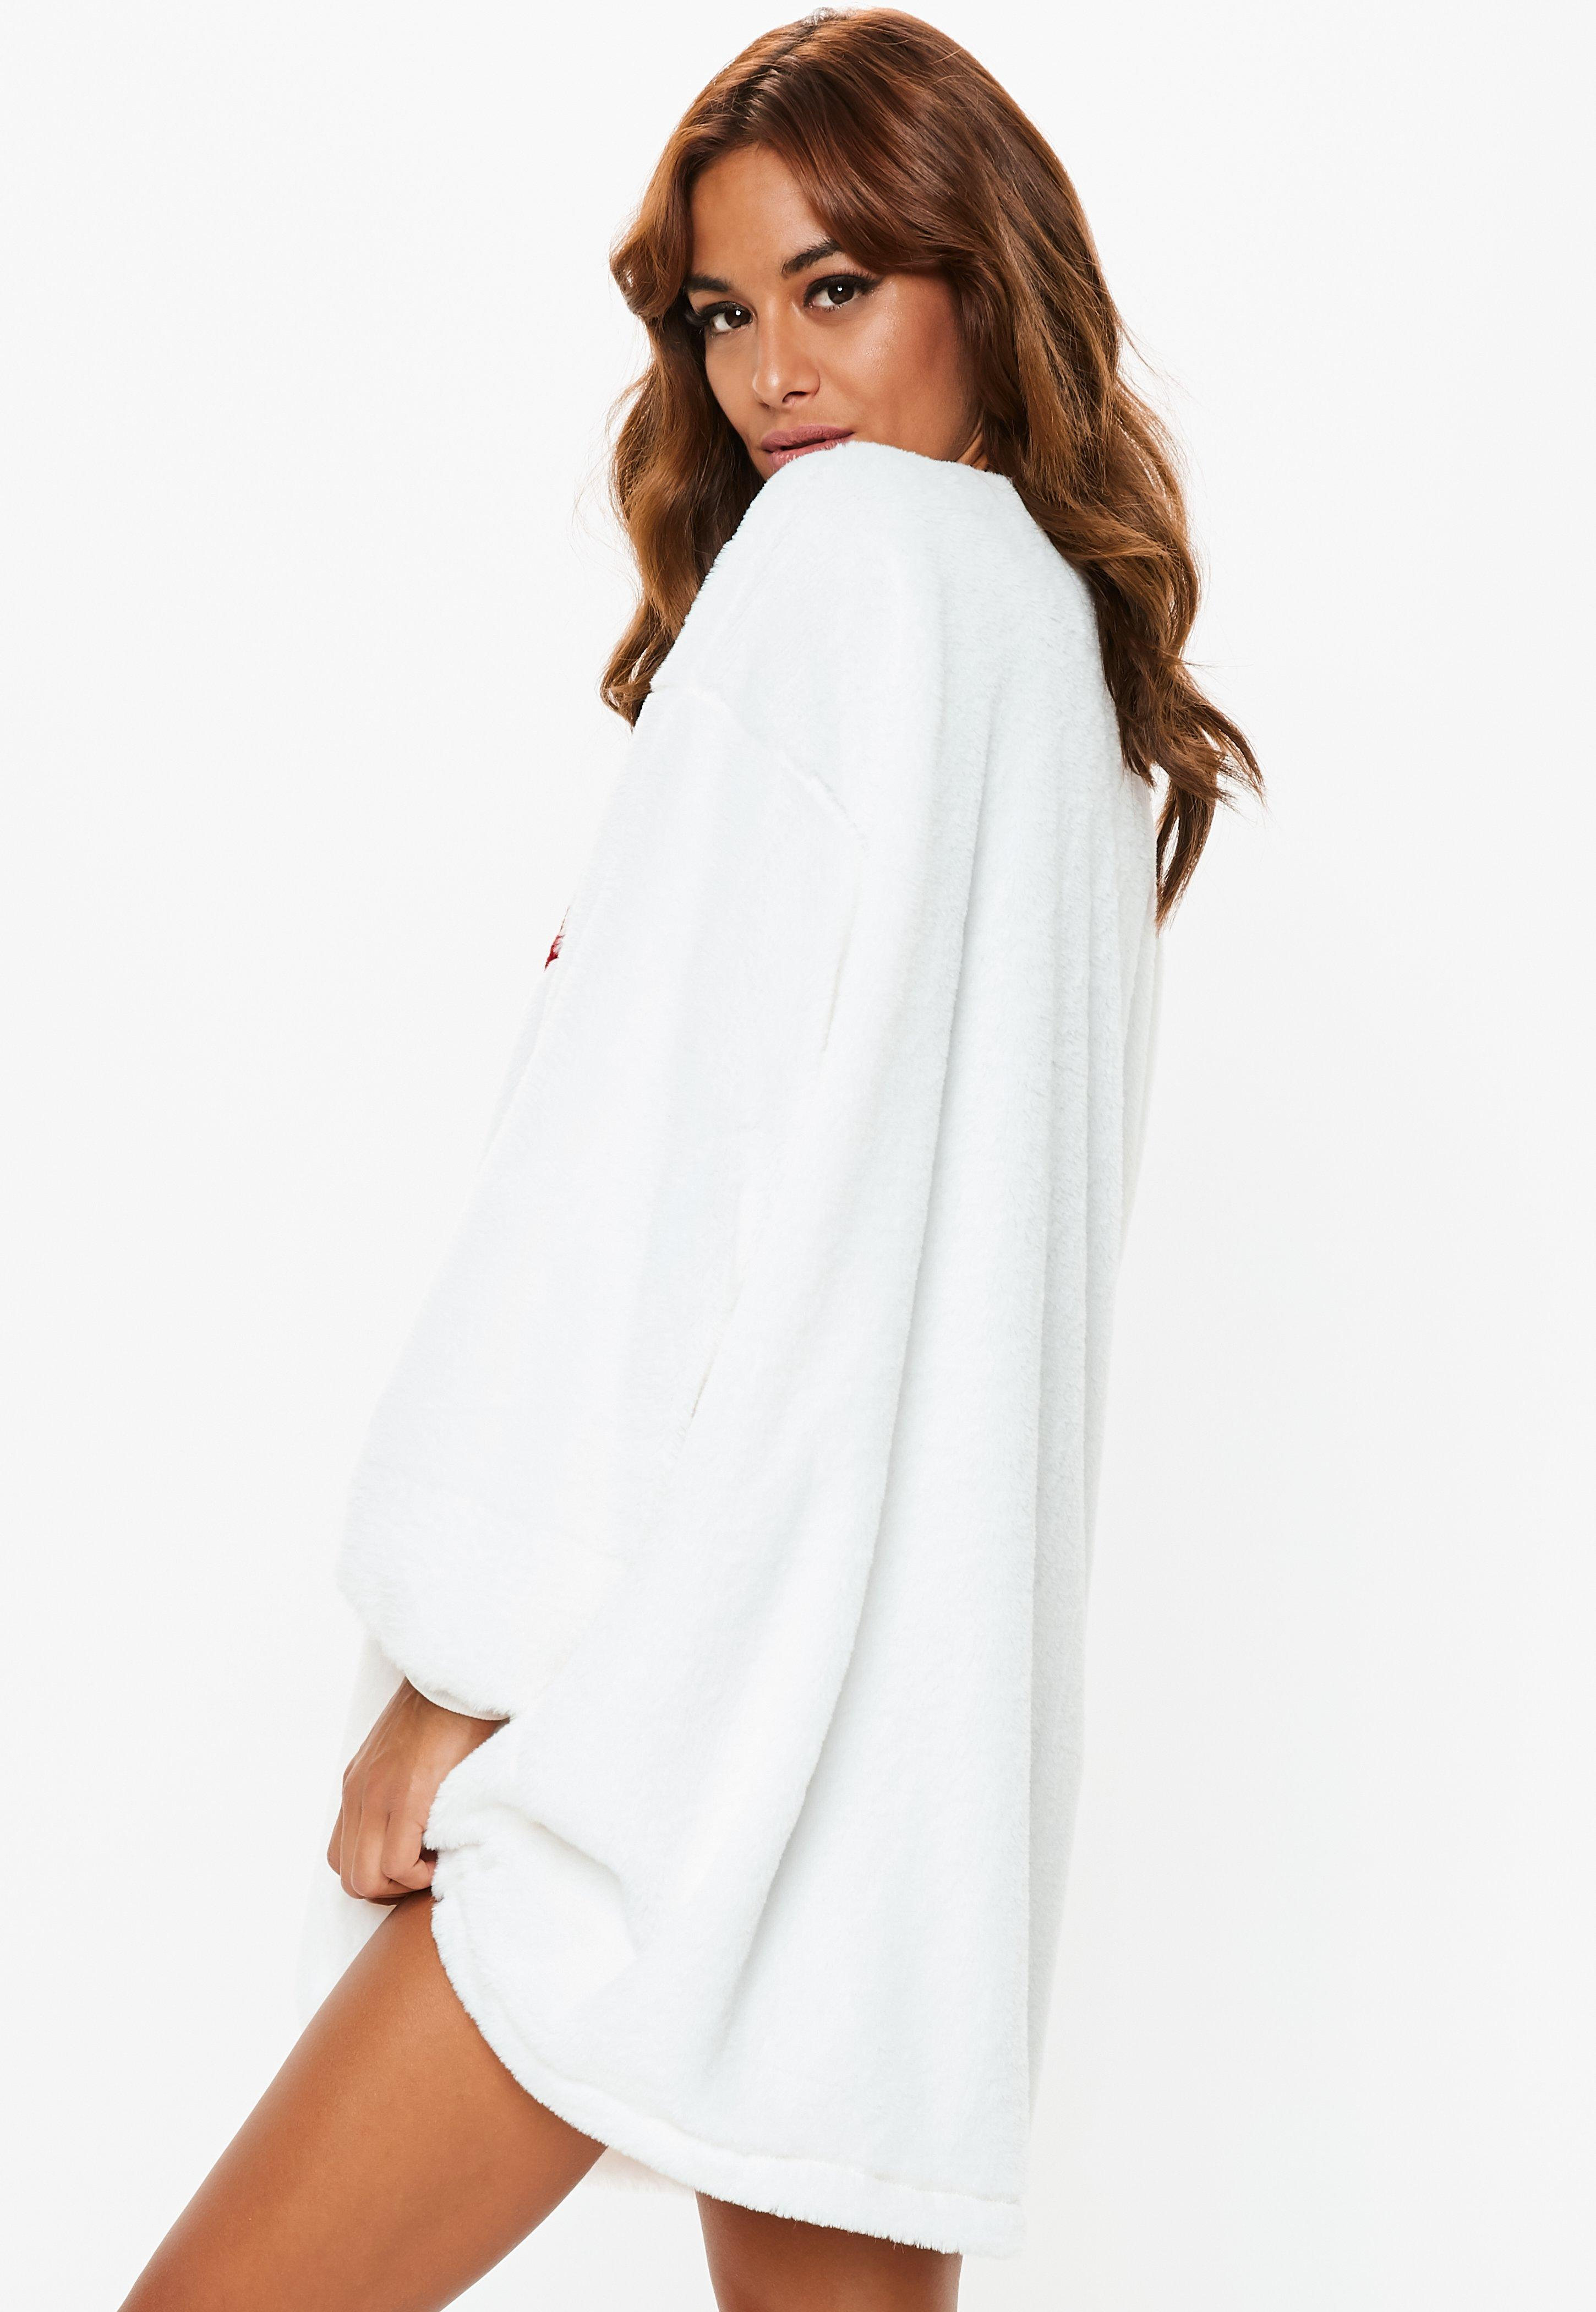 aa019a1a1c5f Lyst - Missguided Cream Oversized Fluffy Saturday Sweater Dress in White